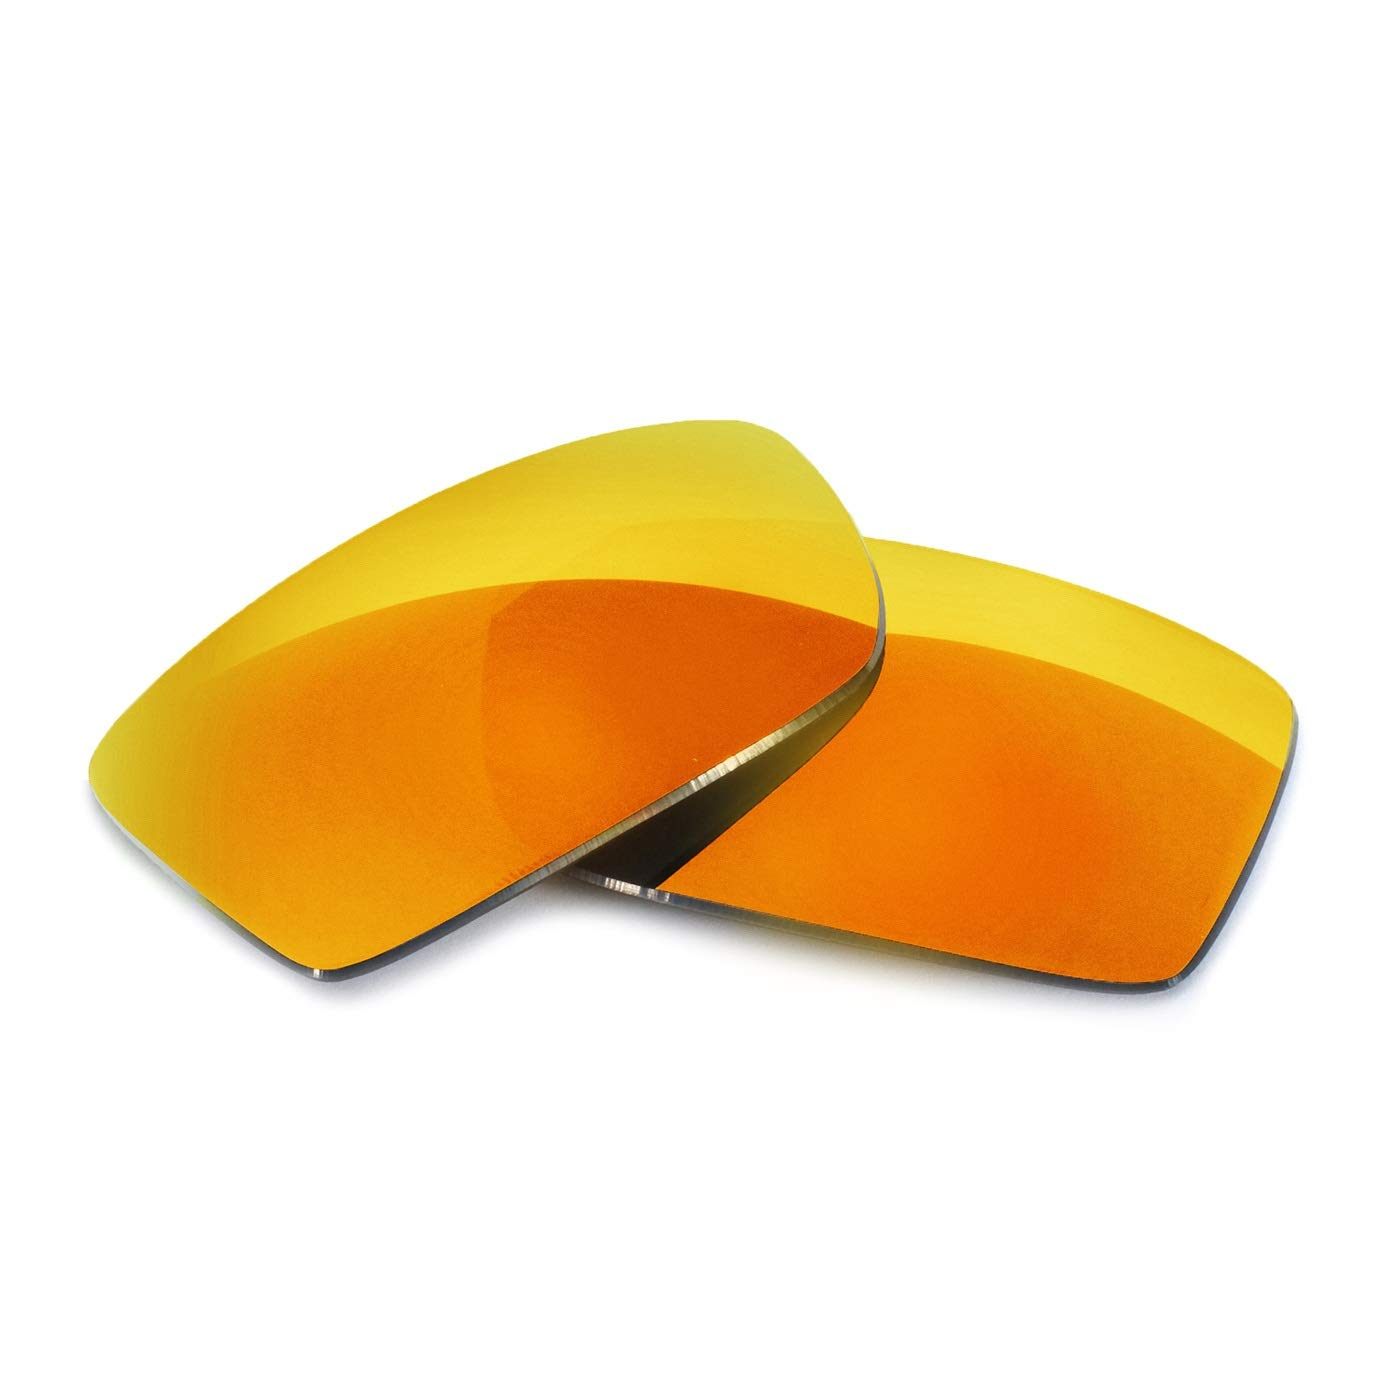 d3d2817988 Amazon.com  Fuse Lenses for Persol 3040-S (59mm)  Clothing